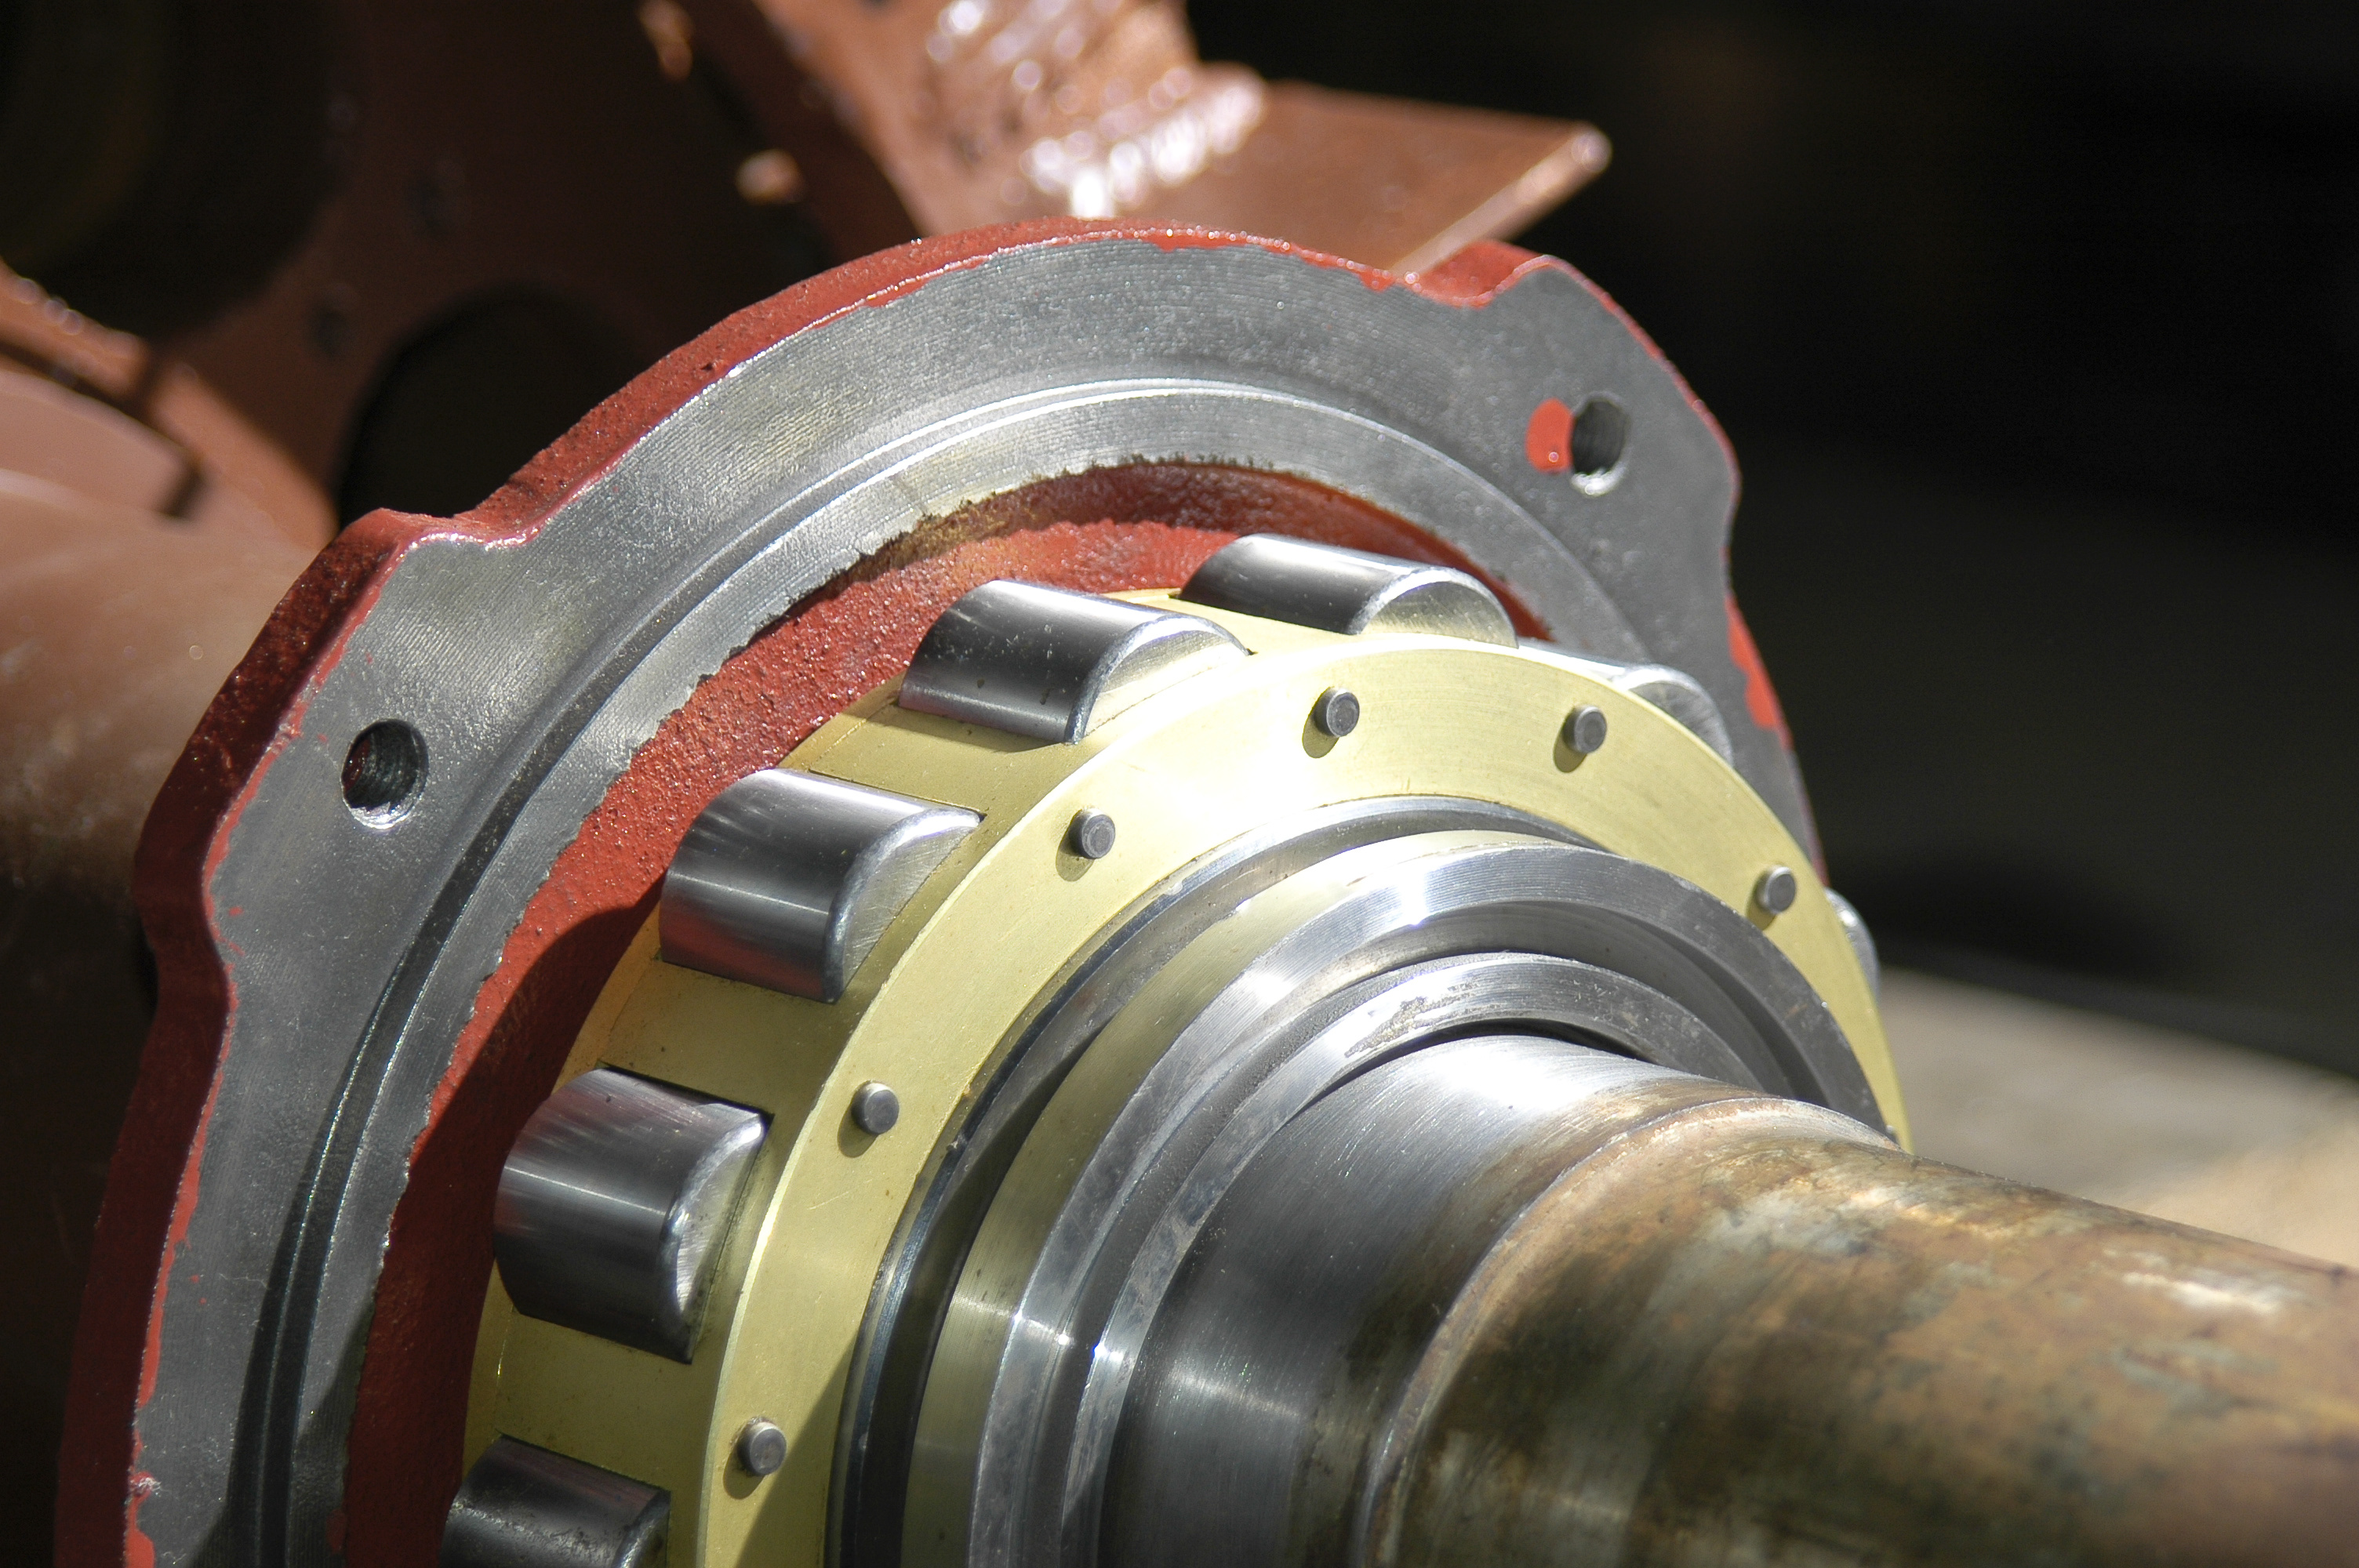 DC electric motor repair - re-sleeving bearing housing